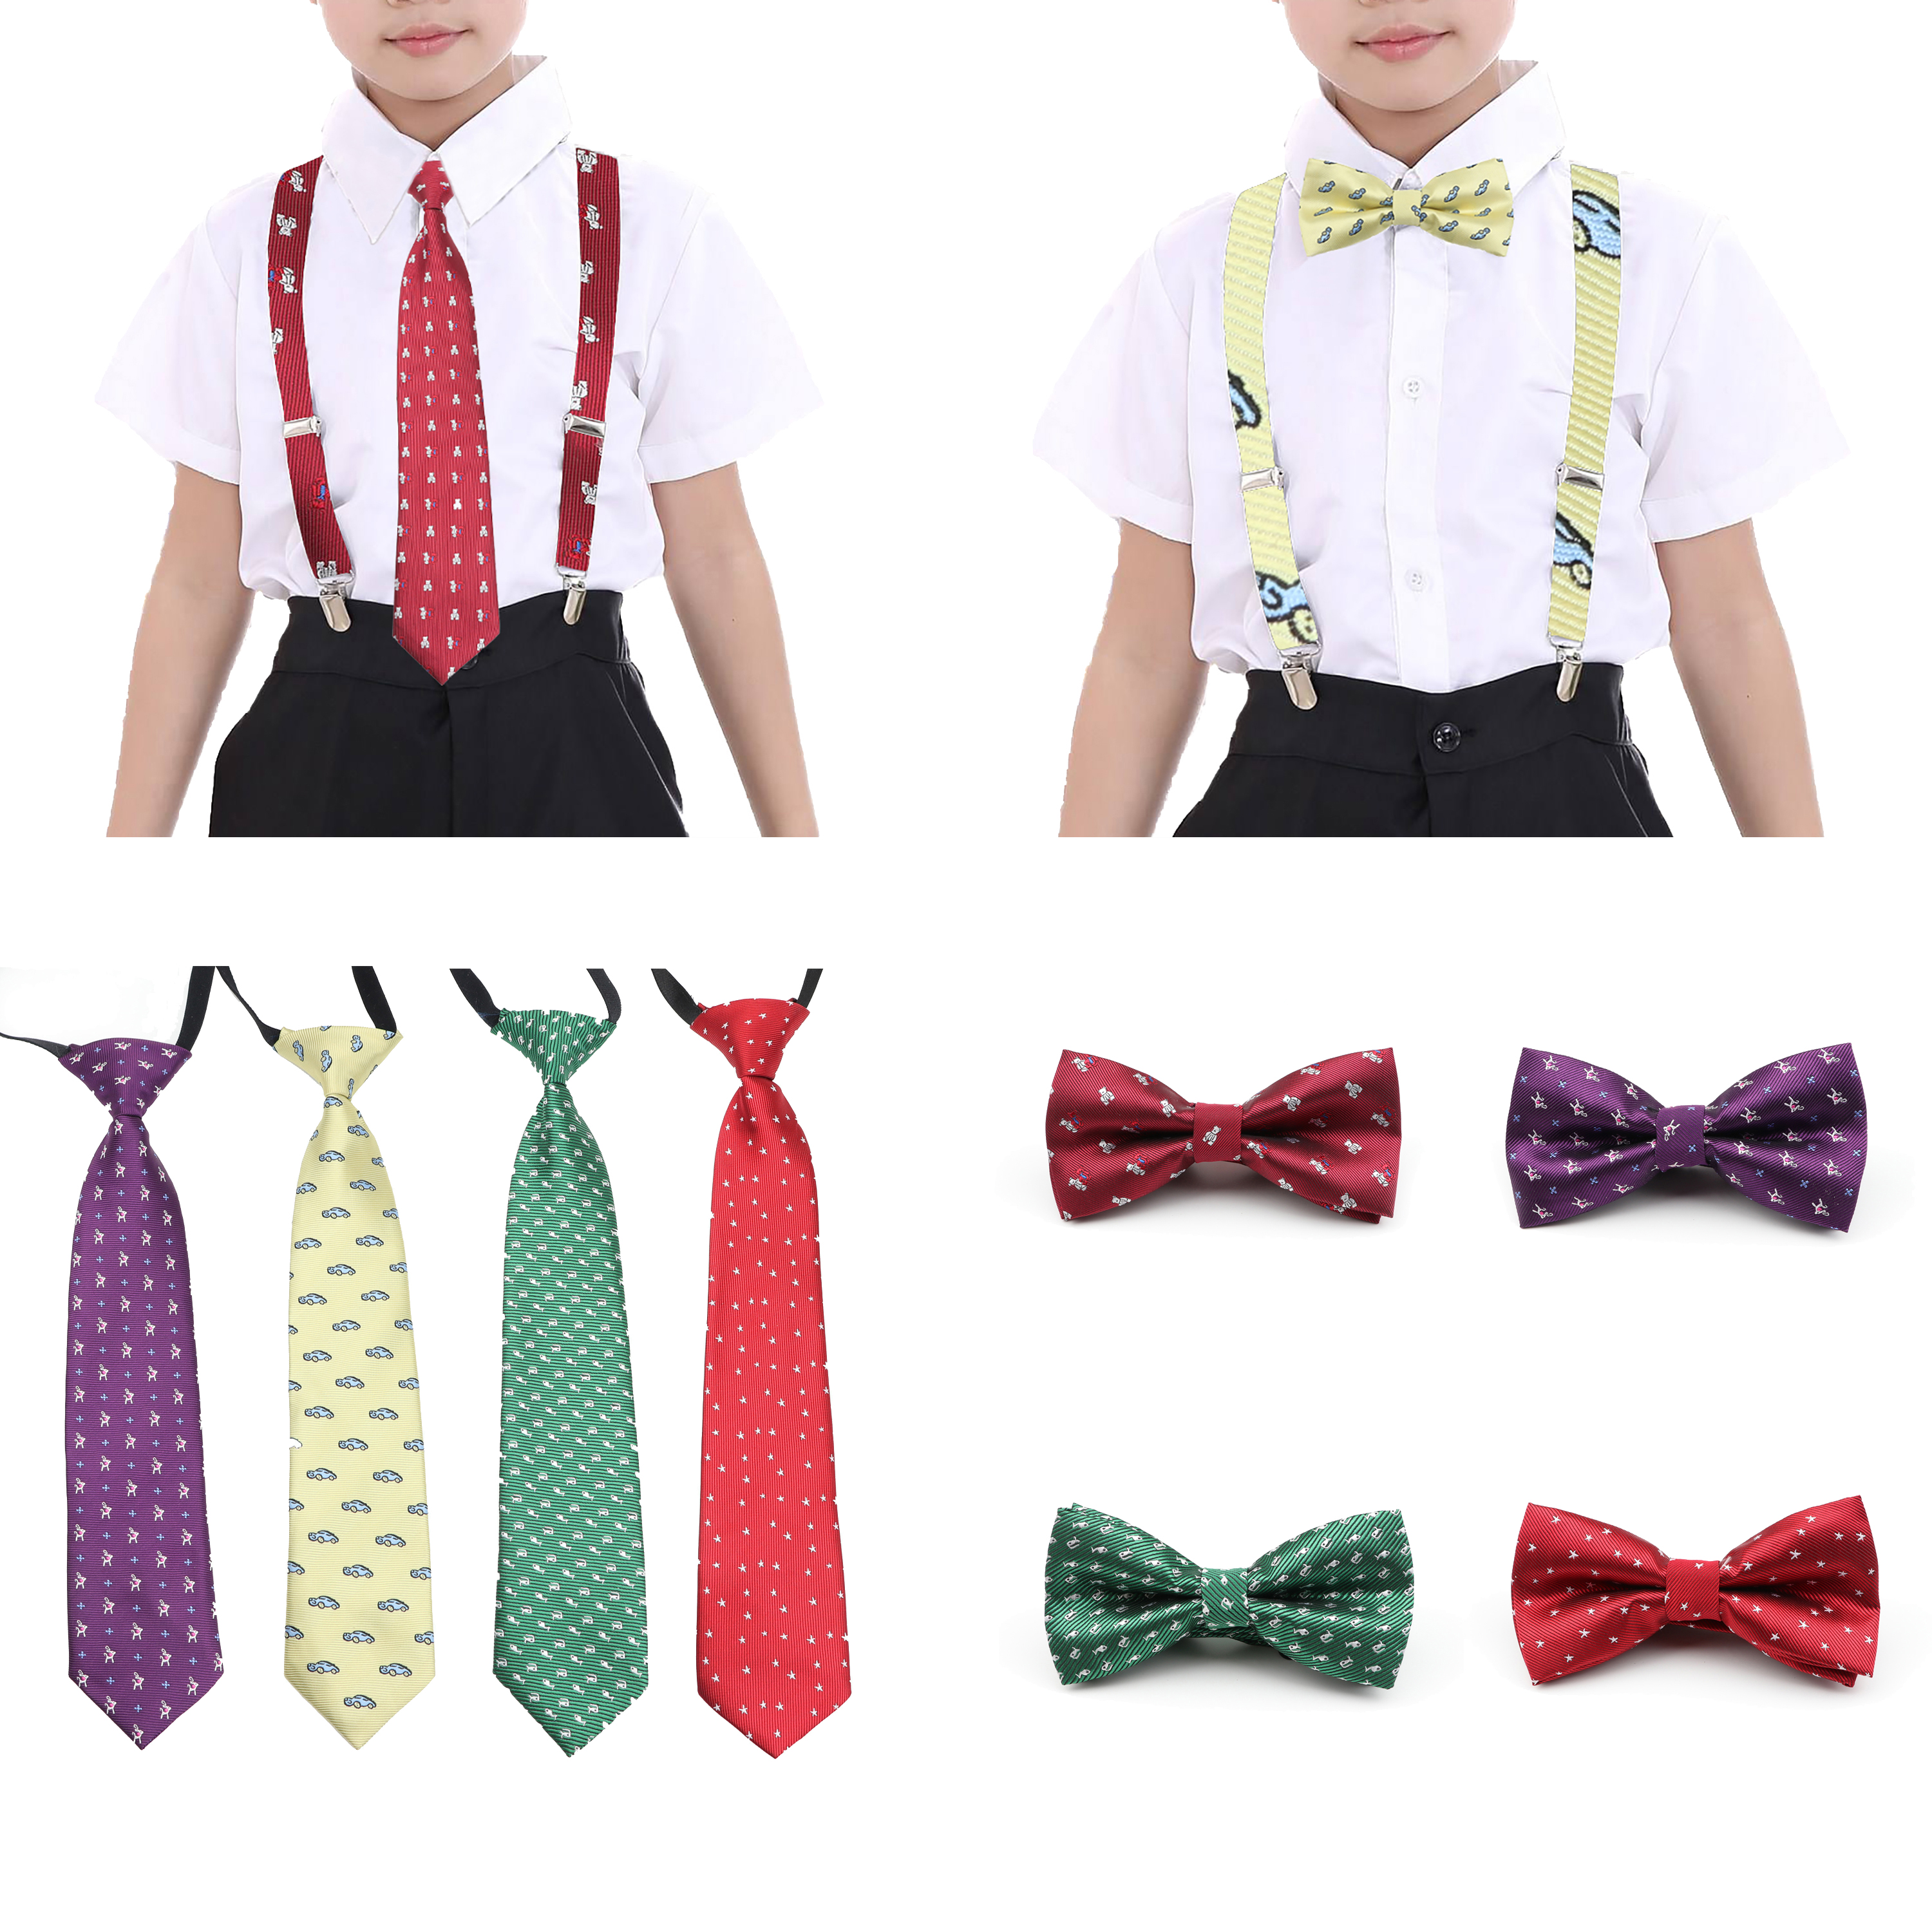 Cartoon Polyester Tie Handkerchief Star Car Bear Boy Girl Kid Elastic Necktie Parent-Child Bowtie Pet Butterfly Accessory Gift